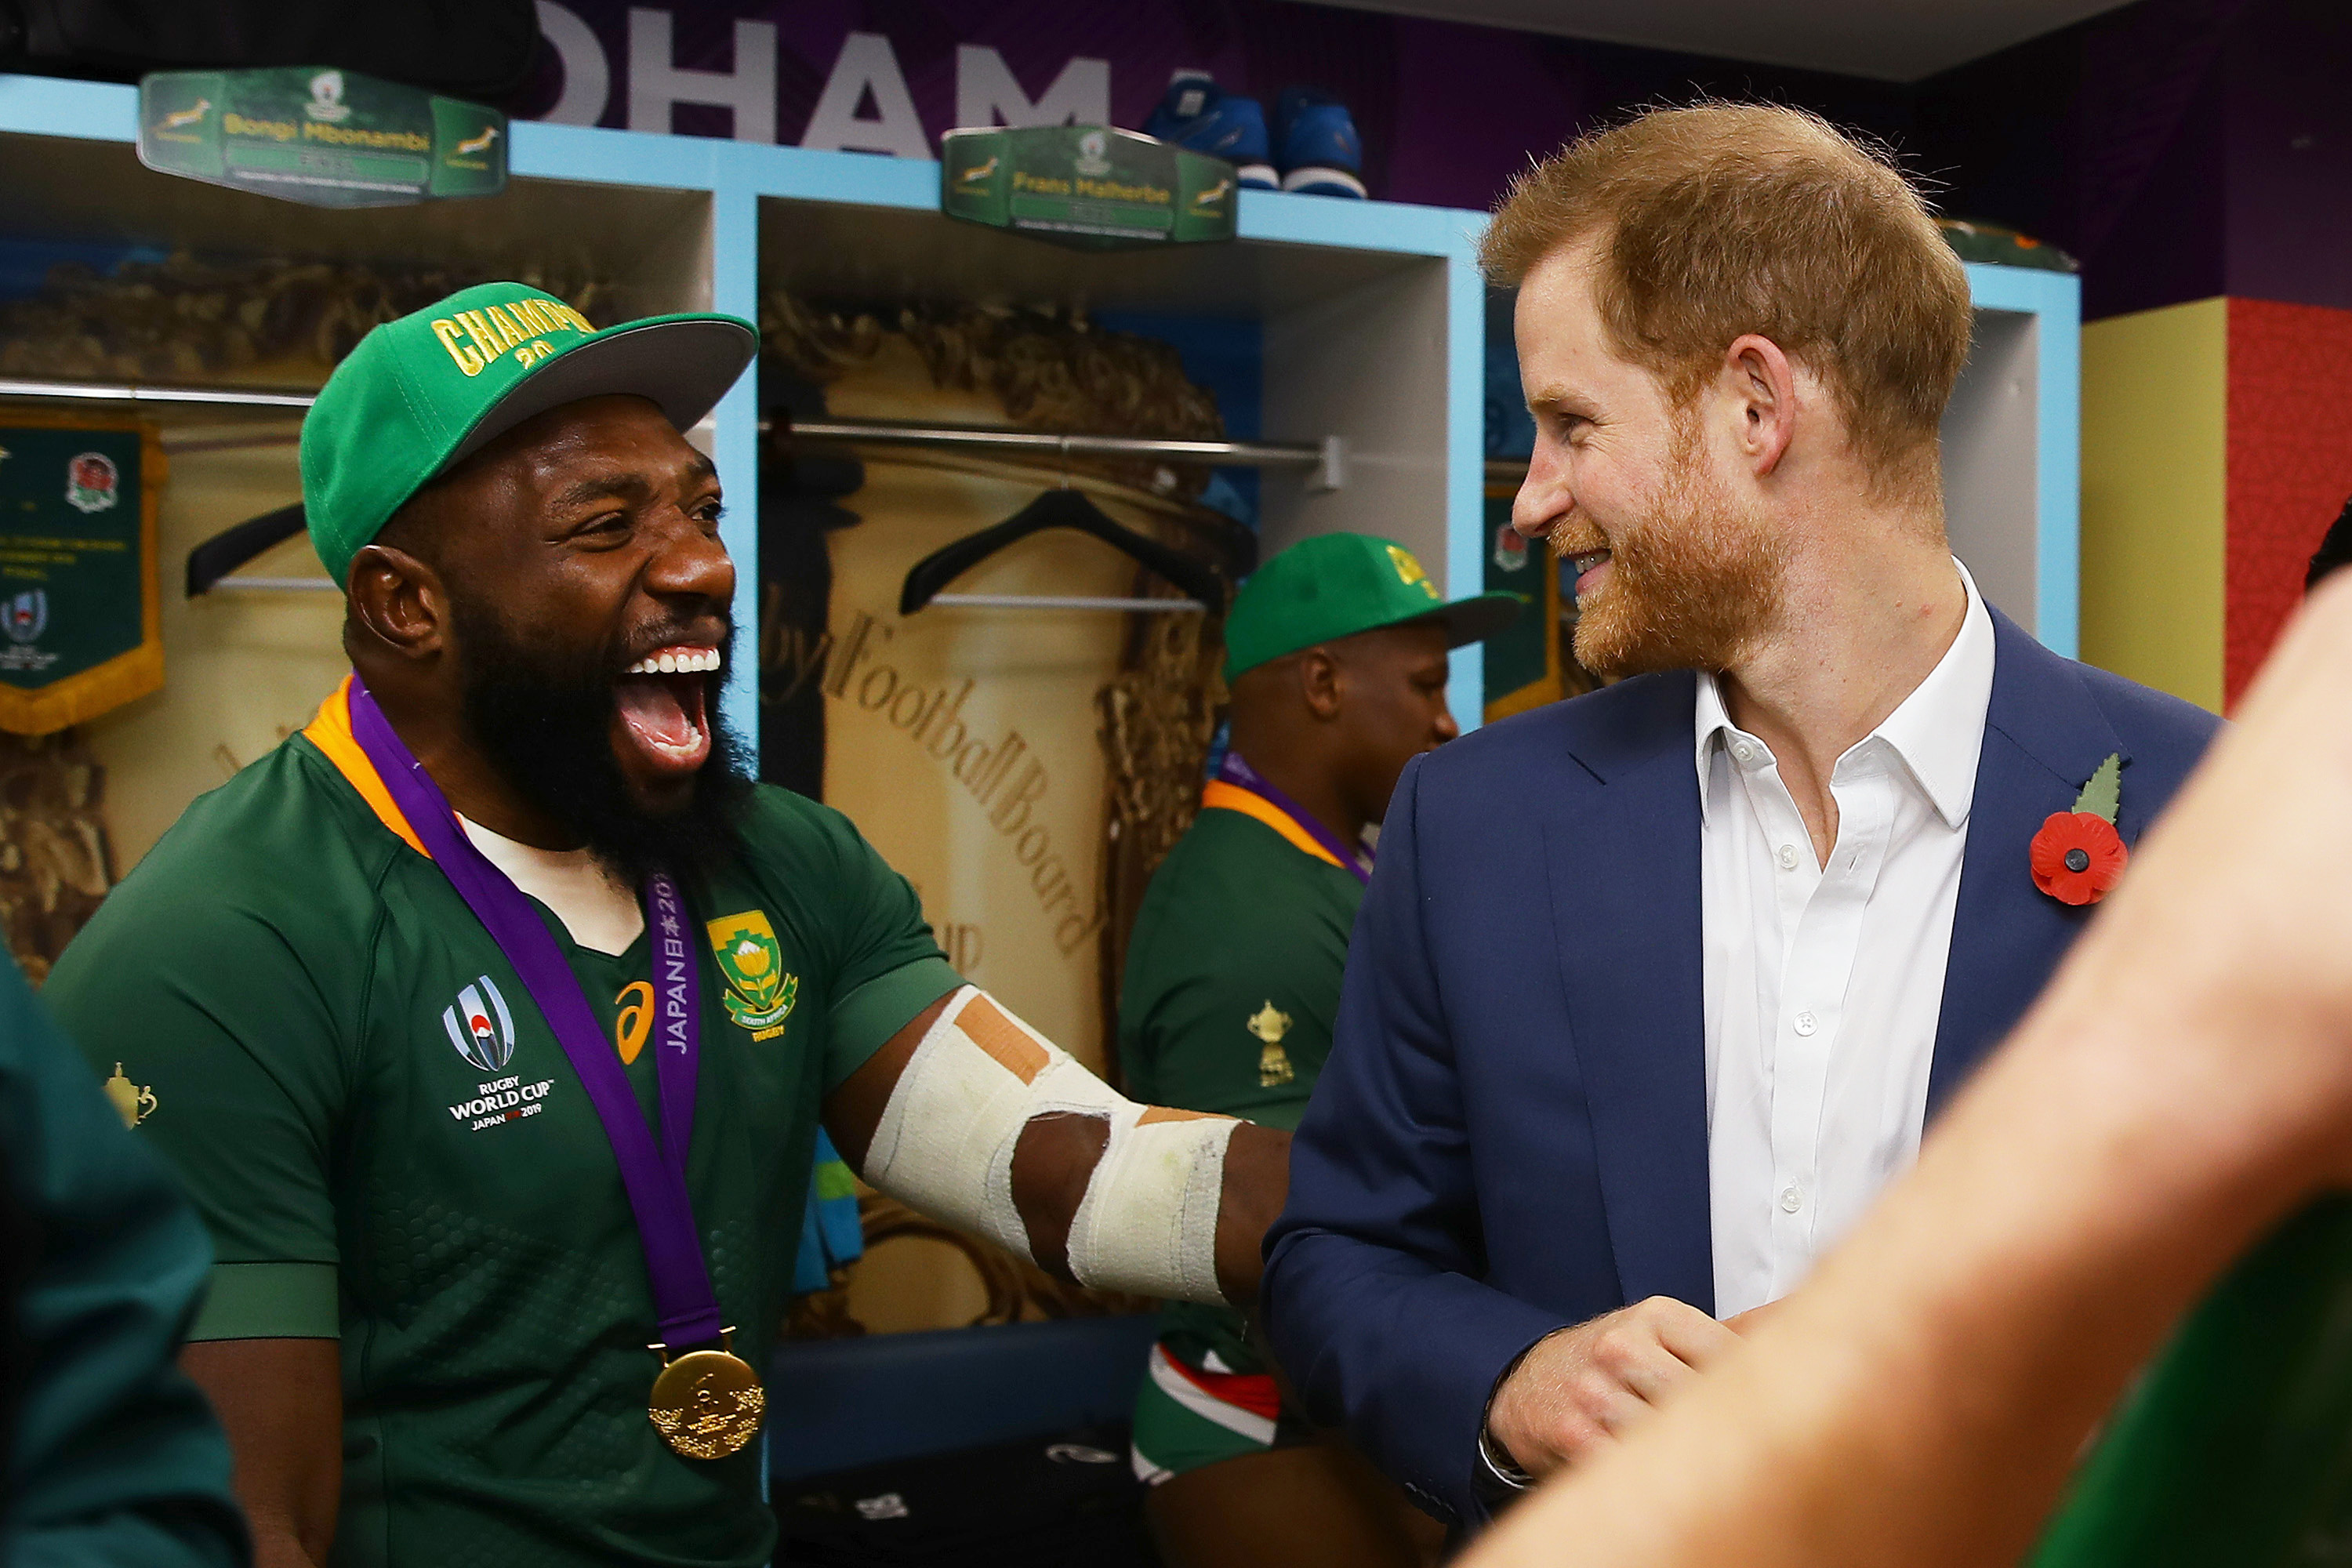 Duke of Sussex shares a joke with Tendai Mtawarira of South Africa following his team's victory against England. Handout/World Rugby via Getty Image